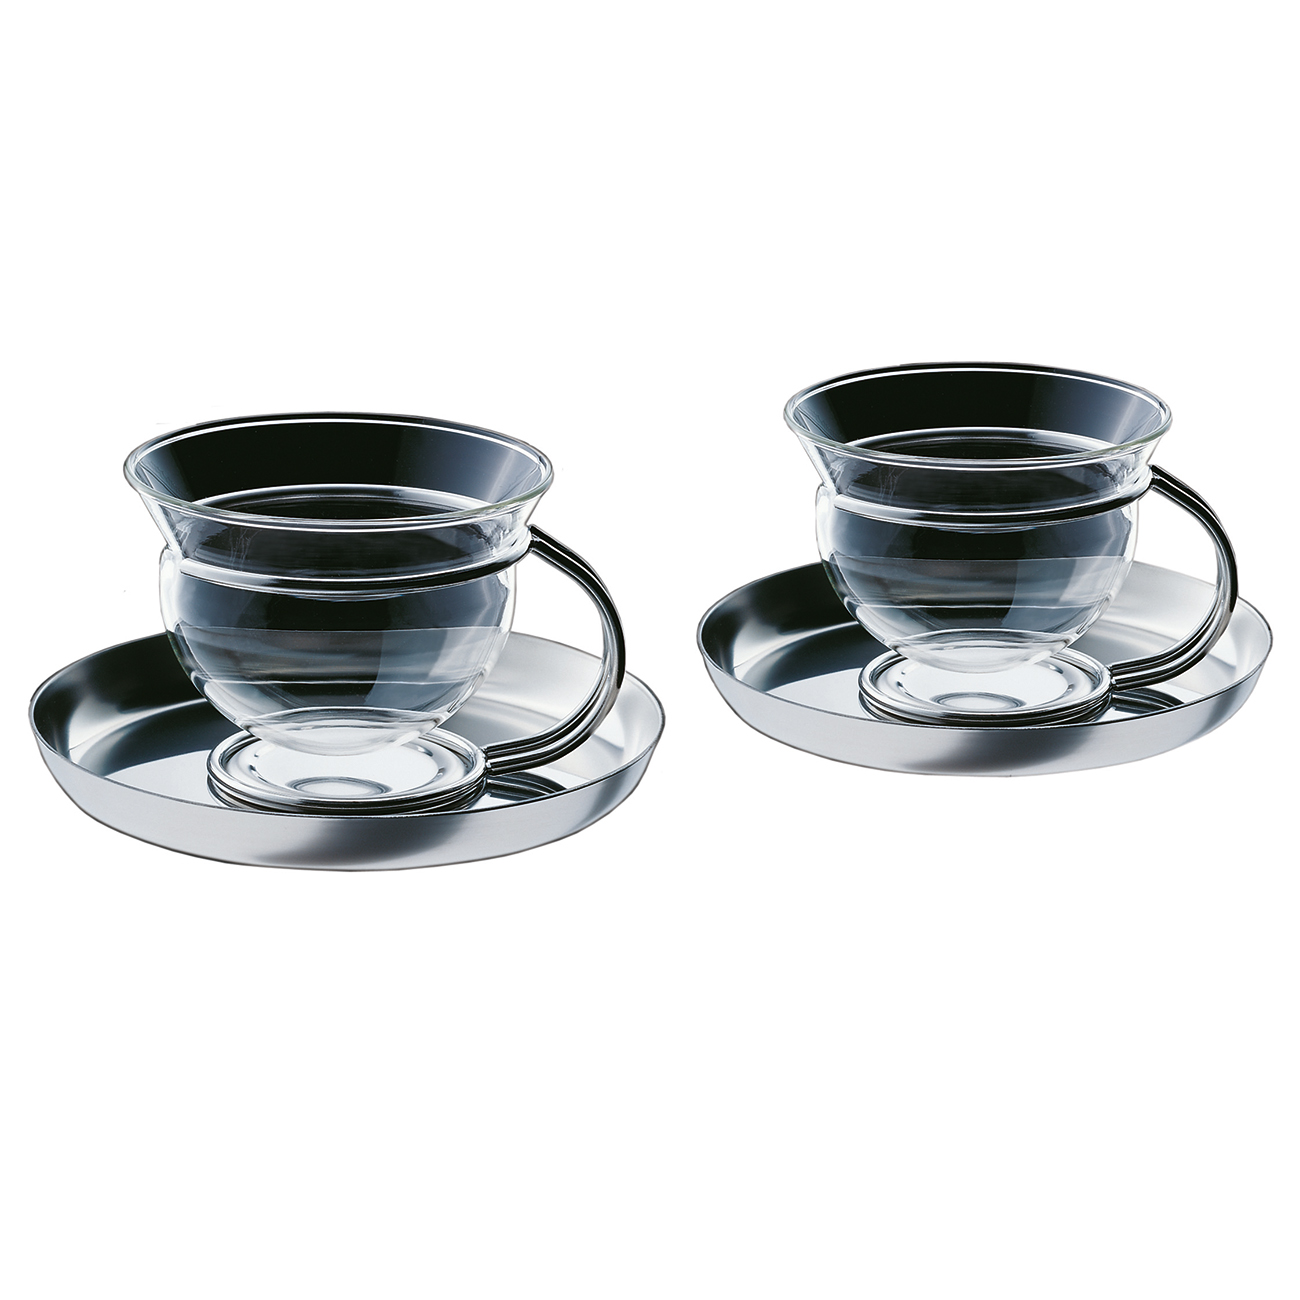 MONO Filio, Teetasse mit Untertasse 2er Set